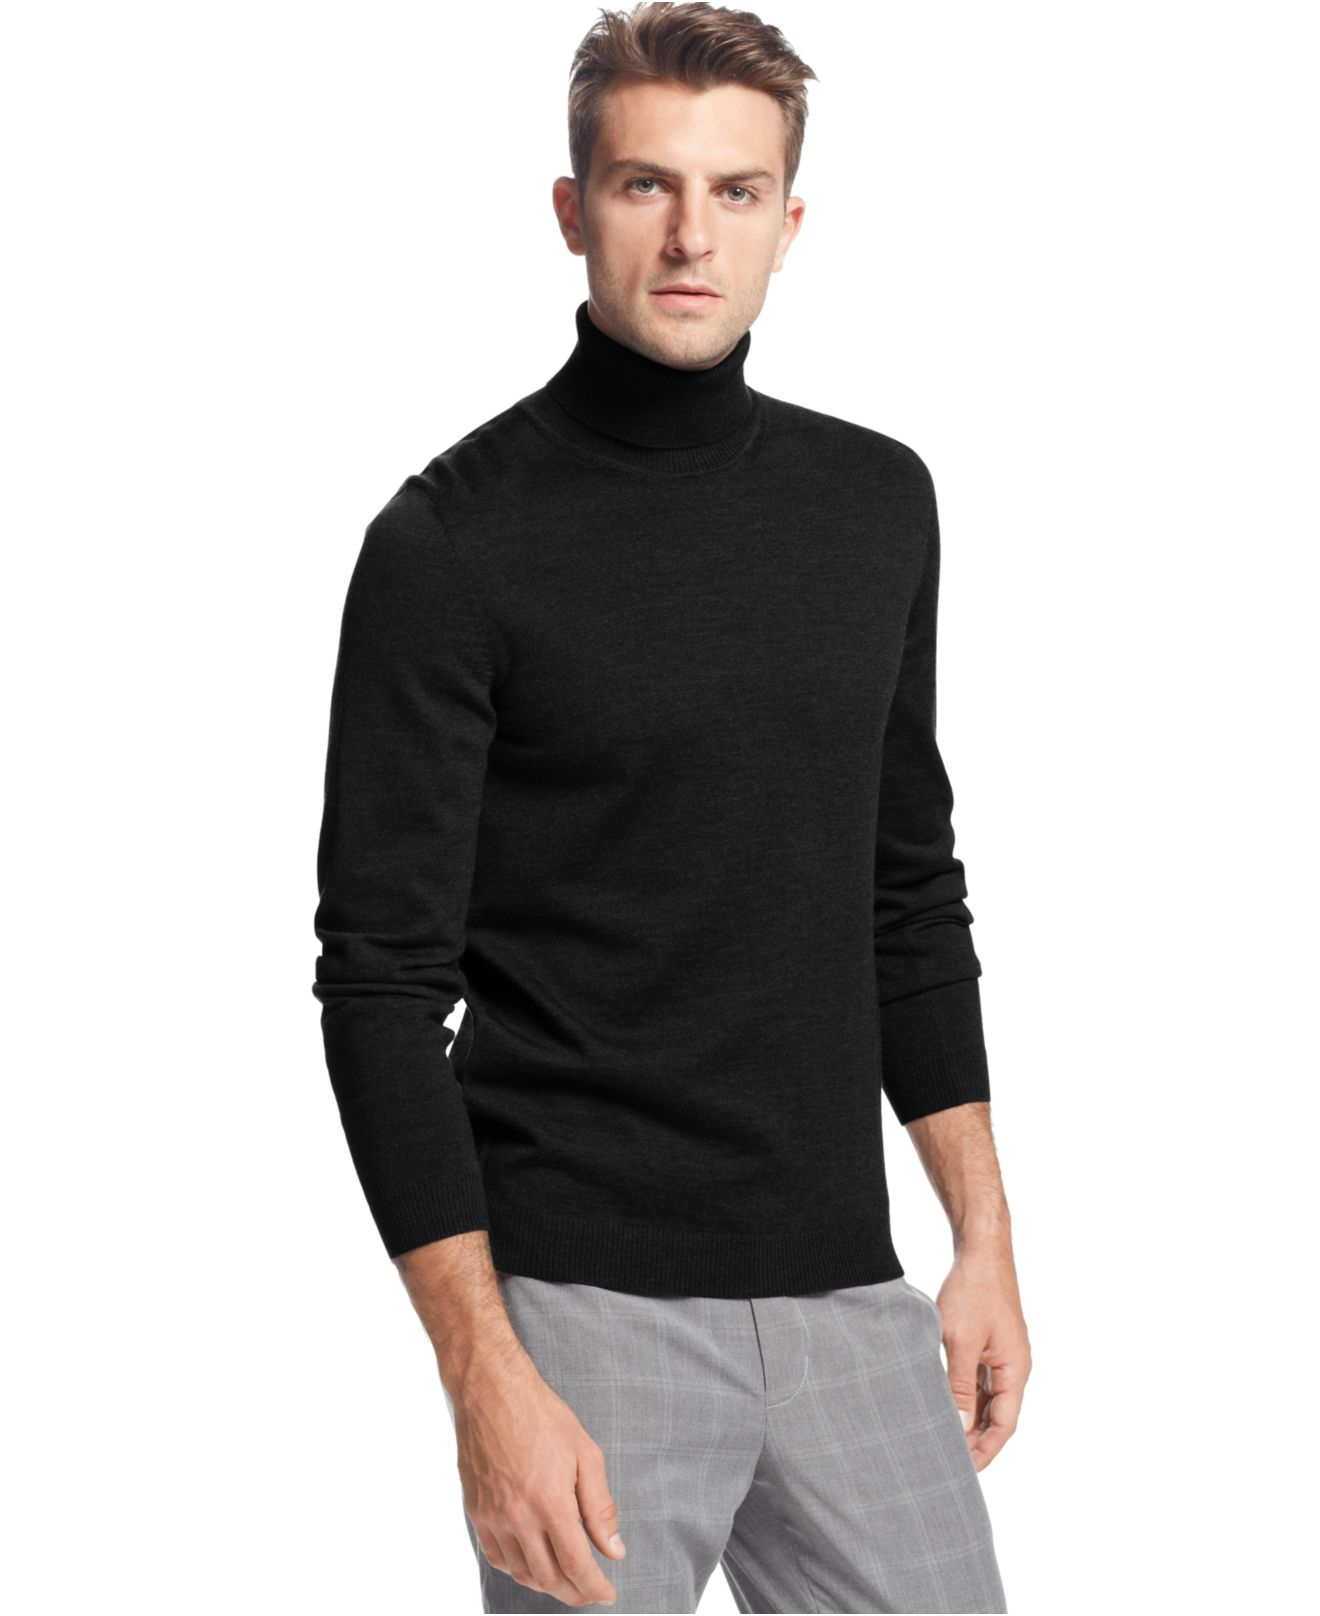 Shop sweaters for men online at chaplin-favor.tk, find latest styles of cheap cool elbow patch sweaters, turtleneck sweater and more mens knitwear at discount price.